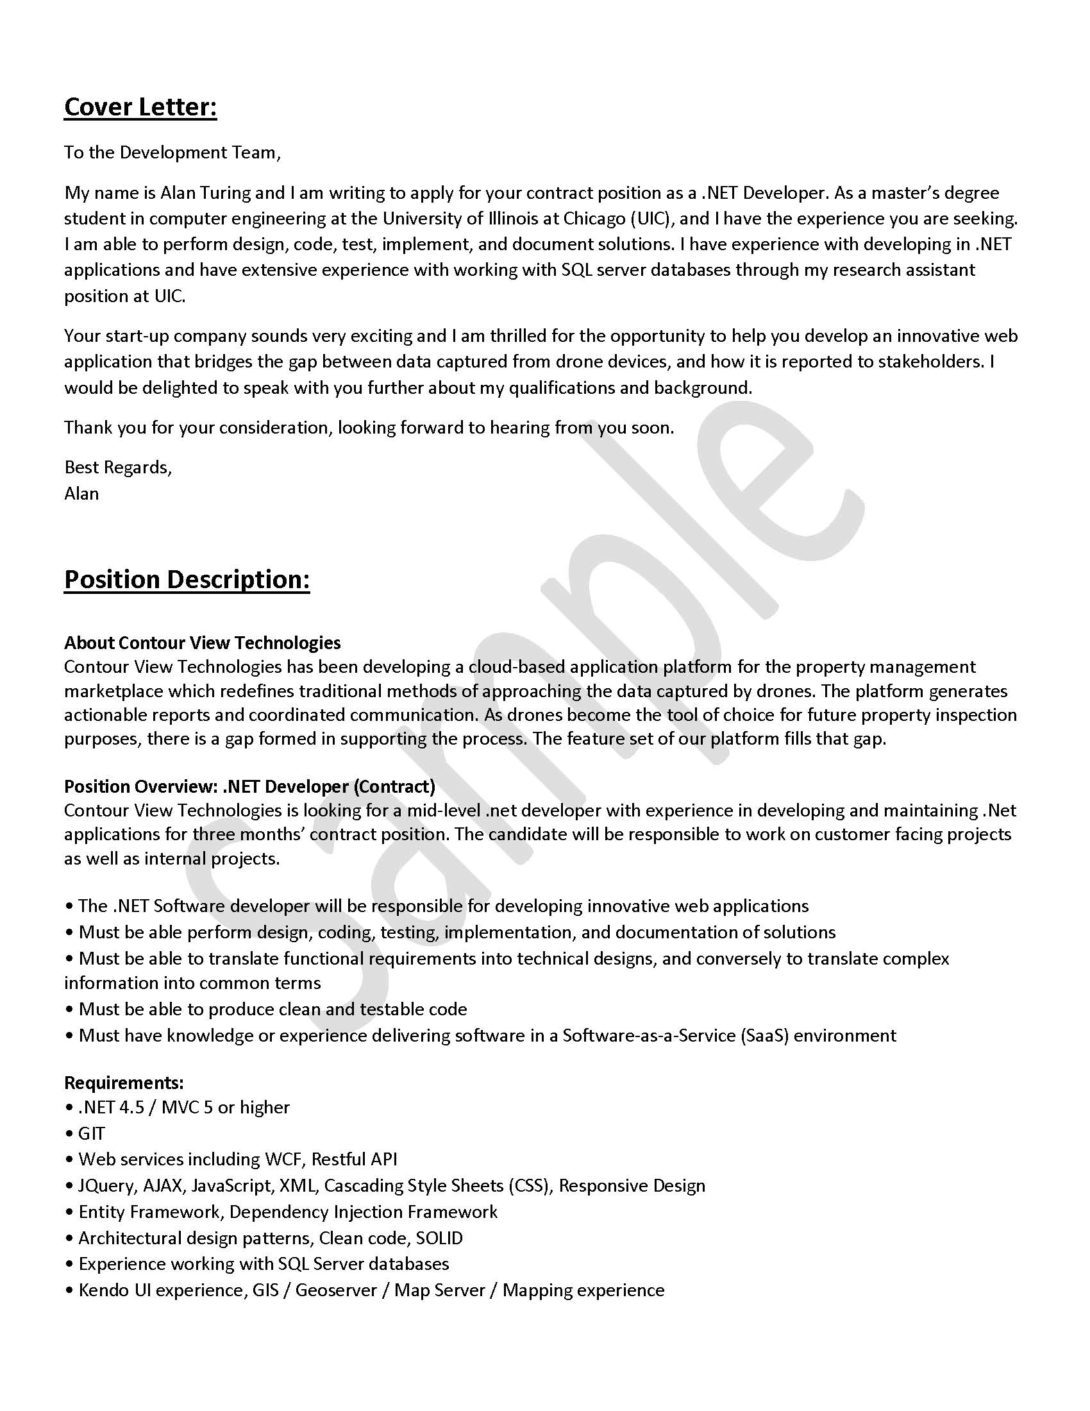 Cover Letter For Applications Cover Letter Engineering Career Center University Of Illinois